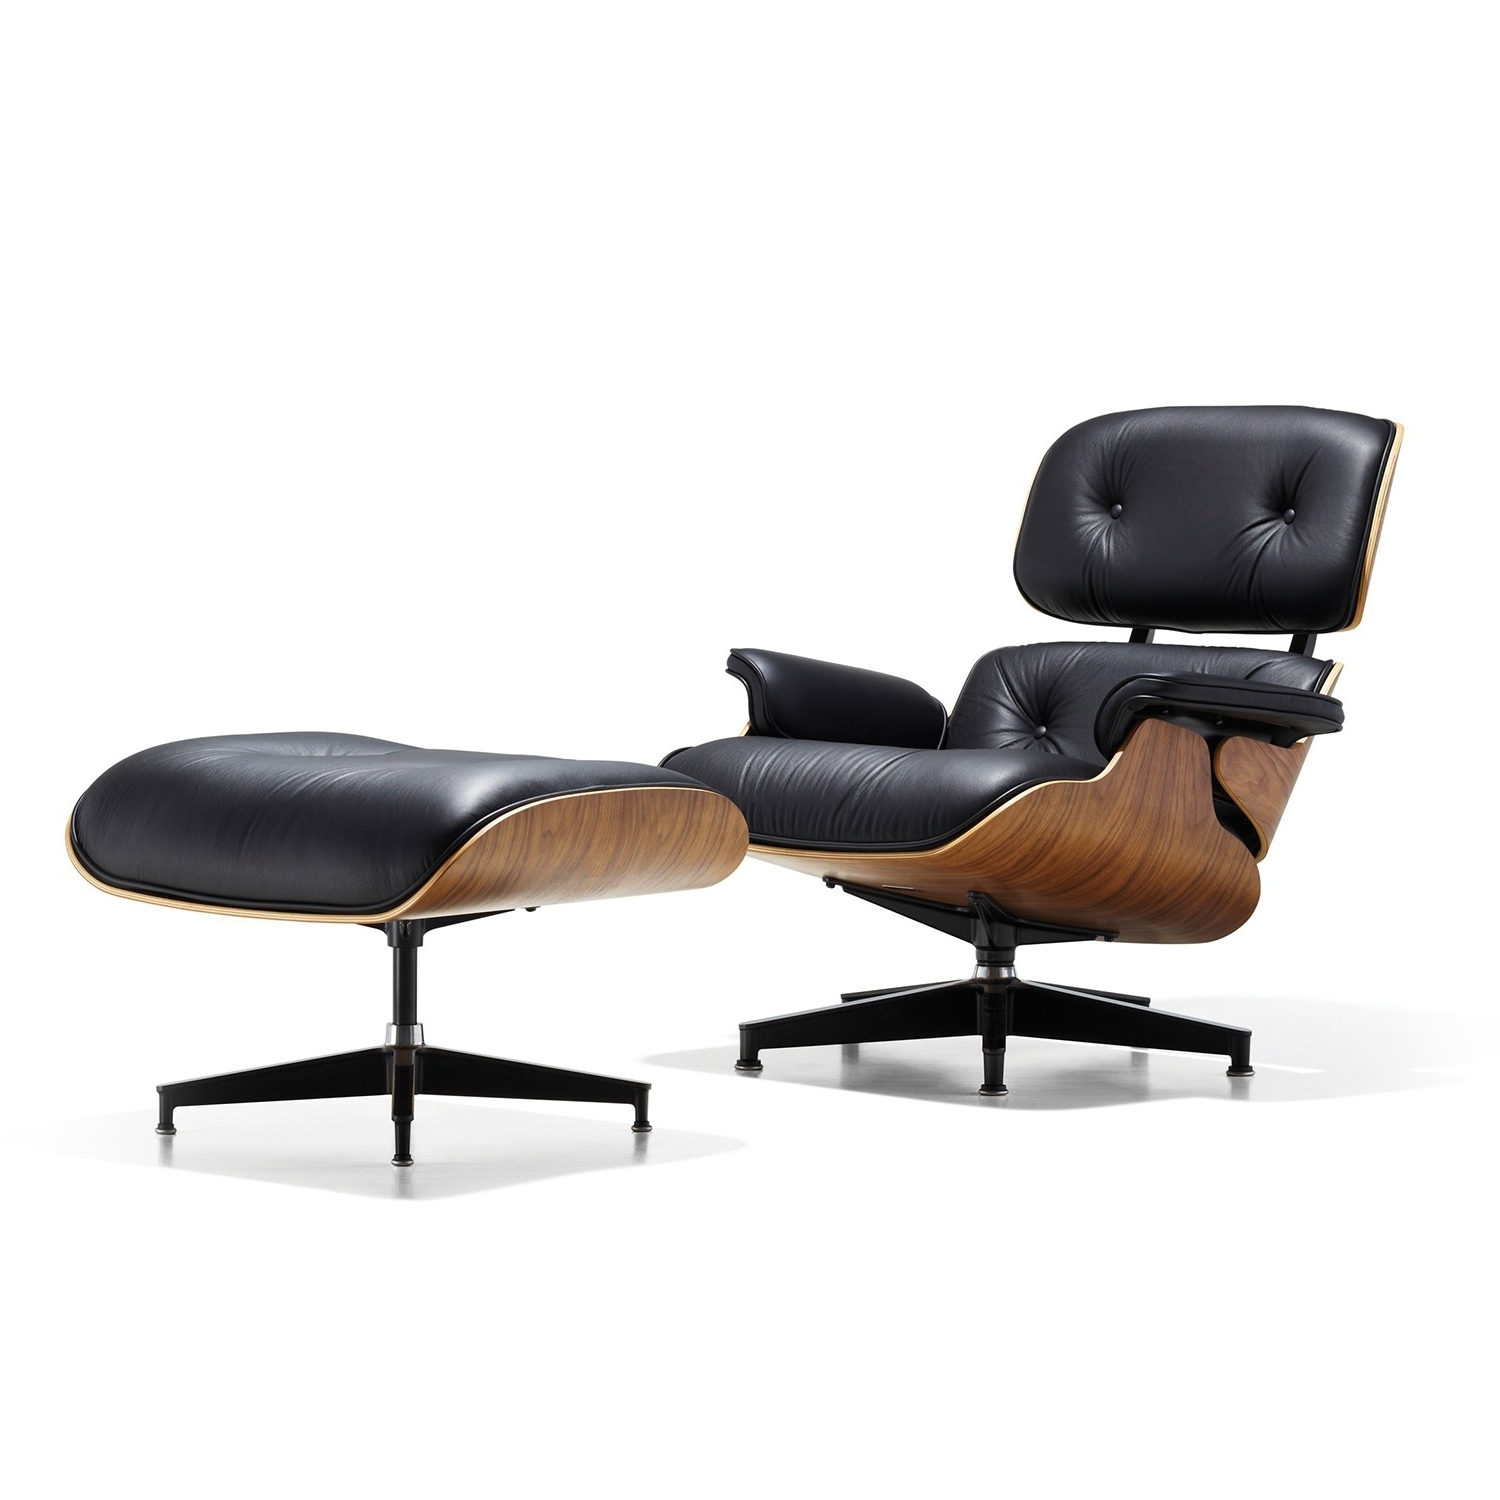 2017 Rocking Chairs With Footstool Pertaining To Ottoman : Herman Miller Lounge Seating Charles Eames Rocking Chair (View 15 of 15)